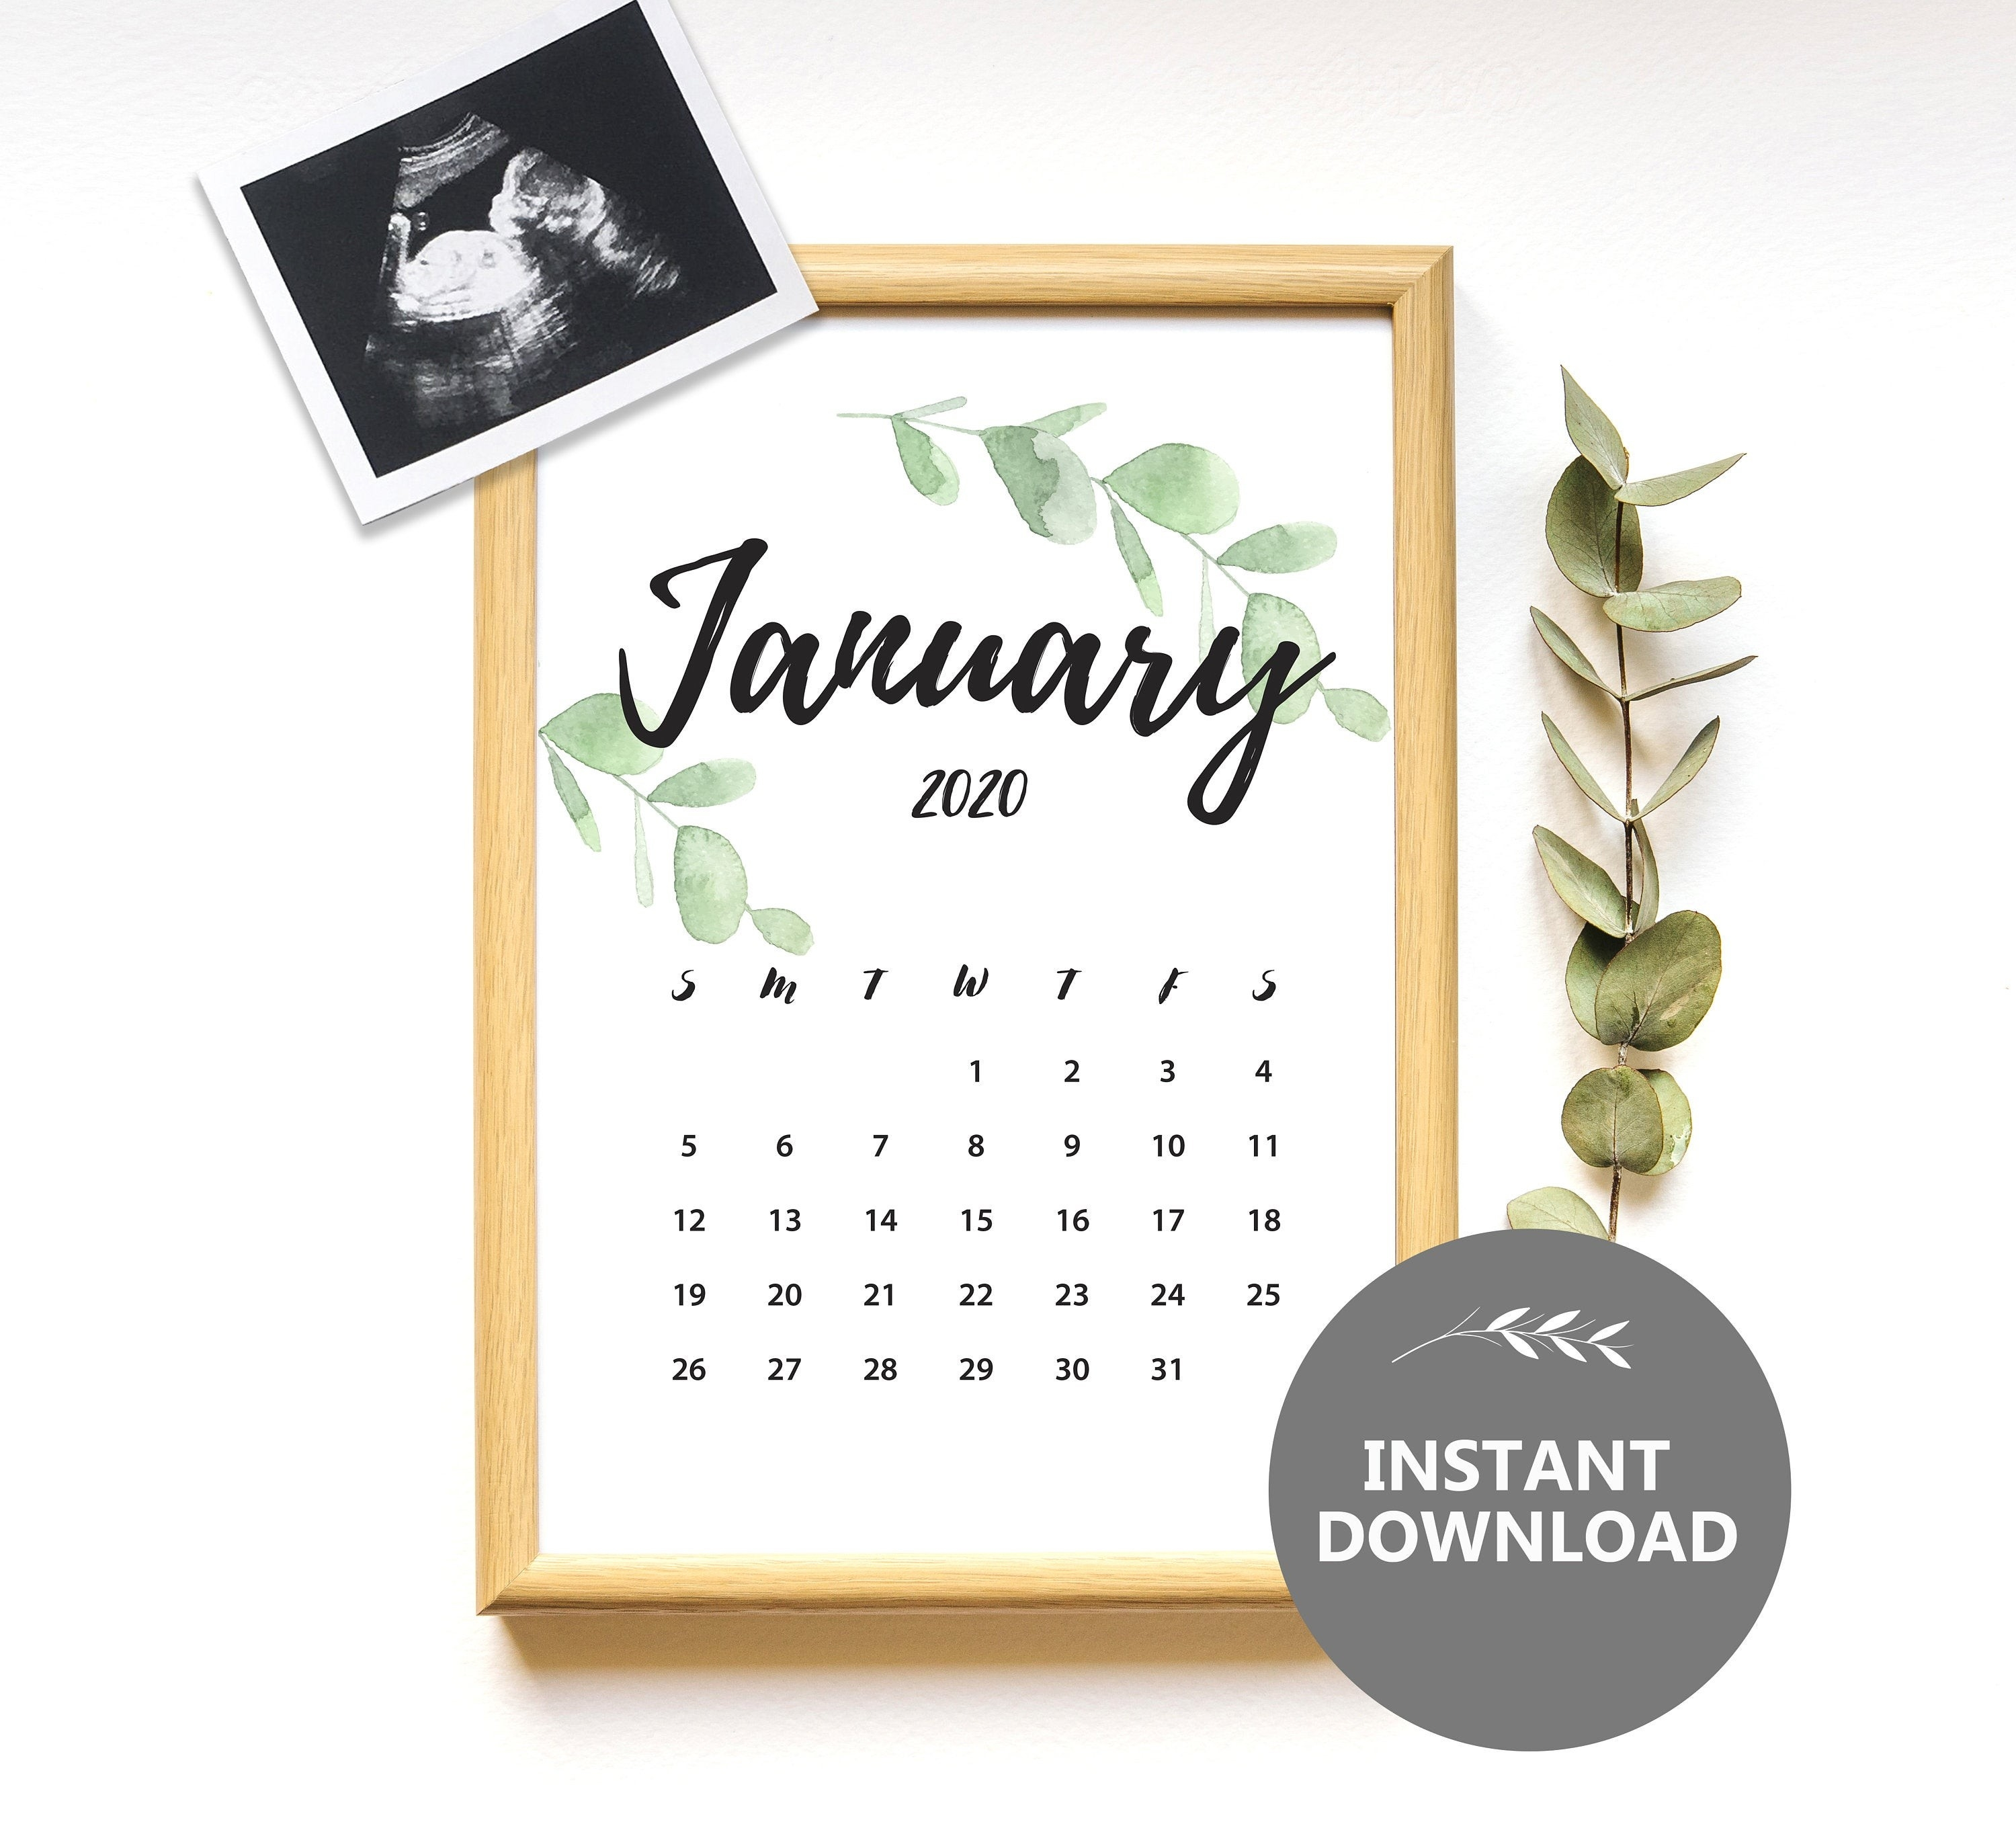 January 2020 Calendar, Instant Download, Pregnancy Announcement, Monthly  Calendar Planner, Baby Due Date Printable Calendar-January 2020 Calendar Baby Announcement